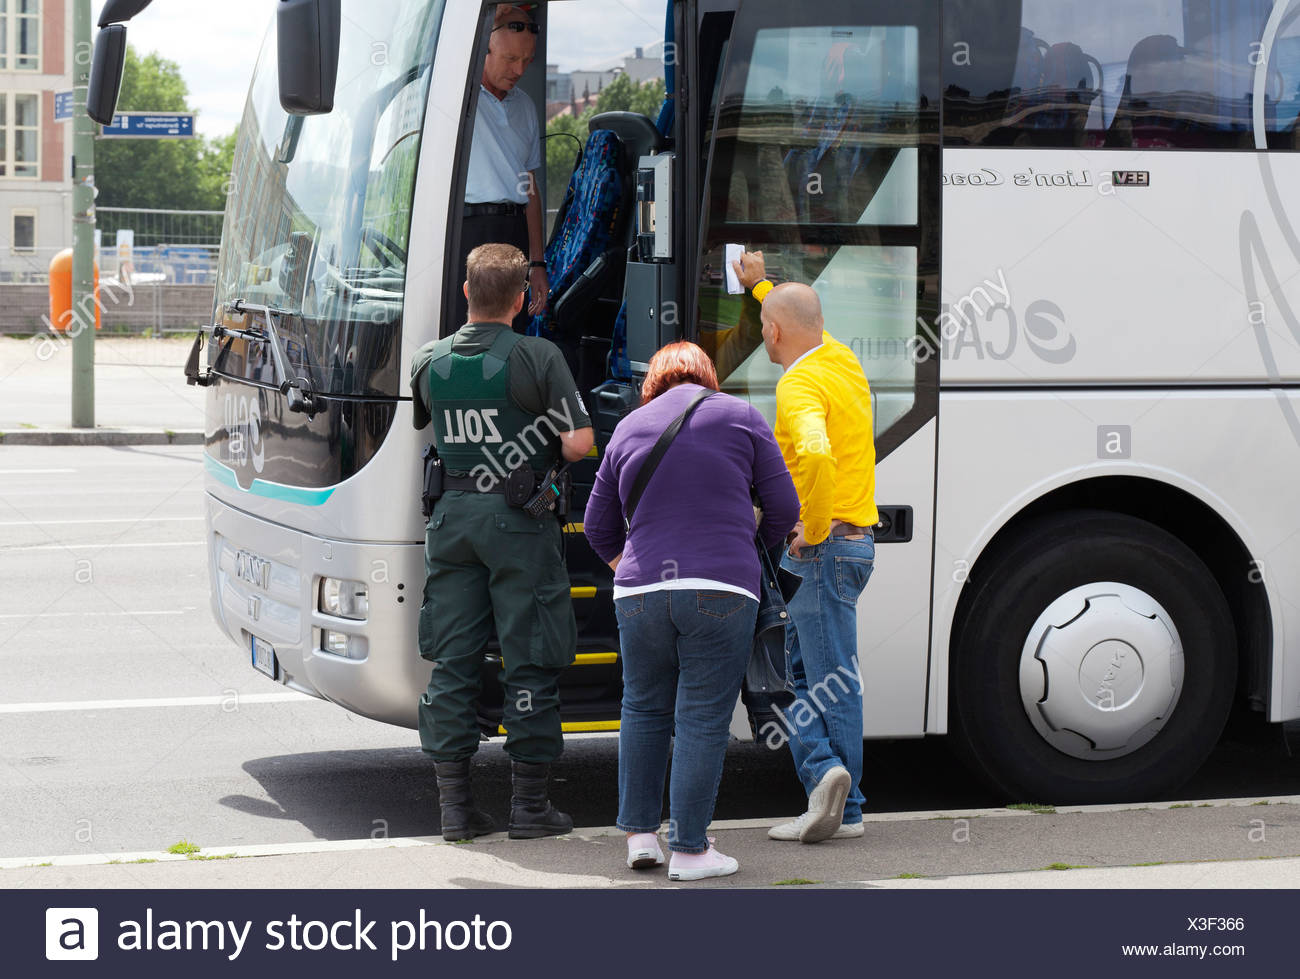 Customs officers inspecting a bus in Berlin Mitte, Germany, Europe - Stock Image